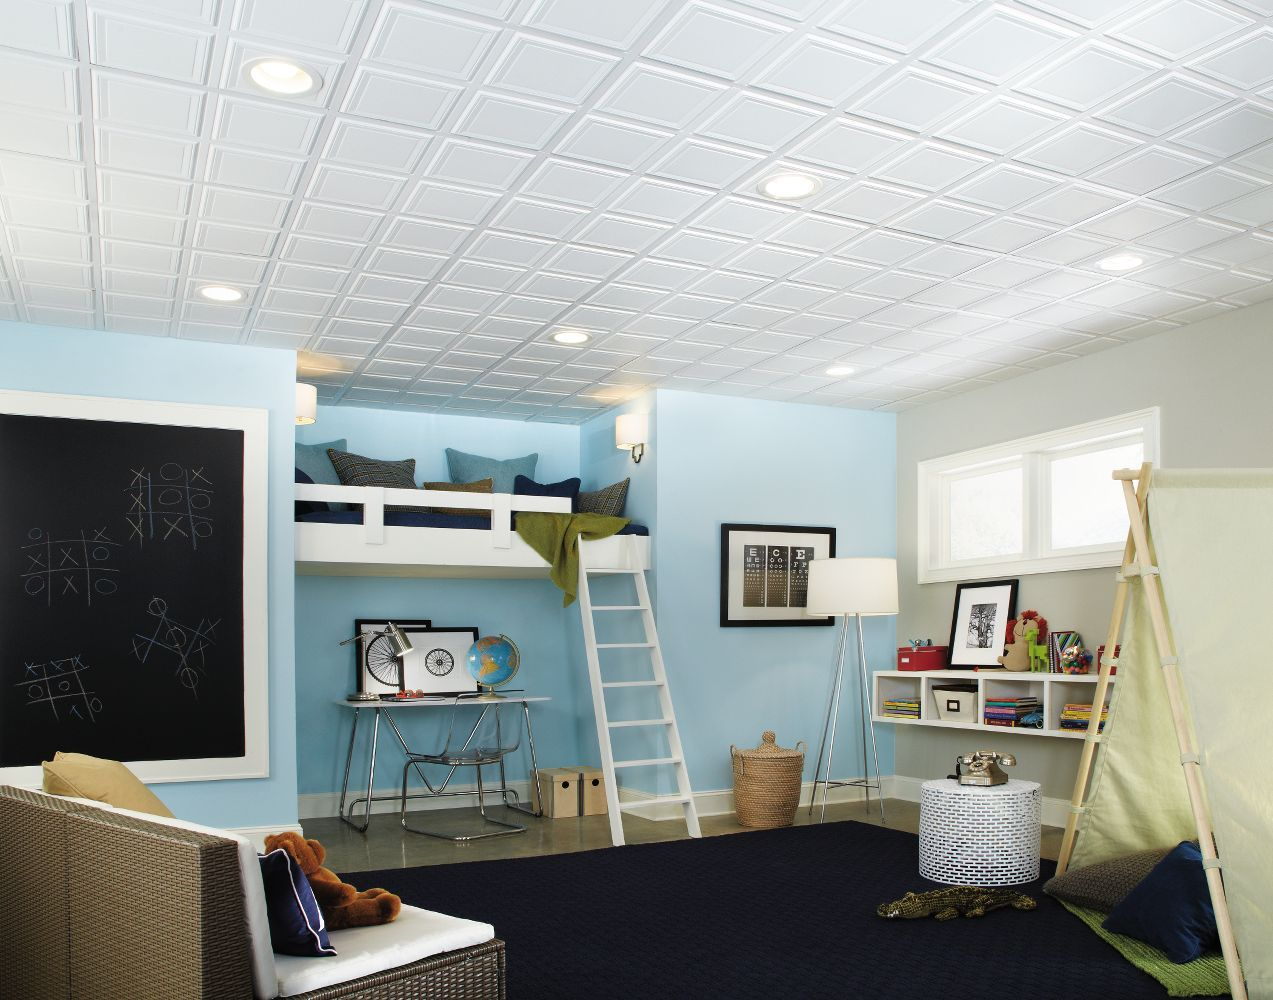 1201 Raised Panel Is A Paintable Ceilings By Armstrong Add Visual